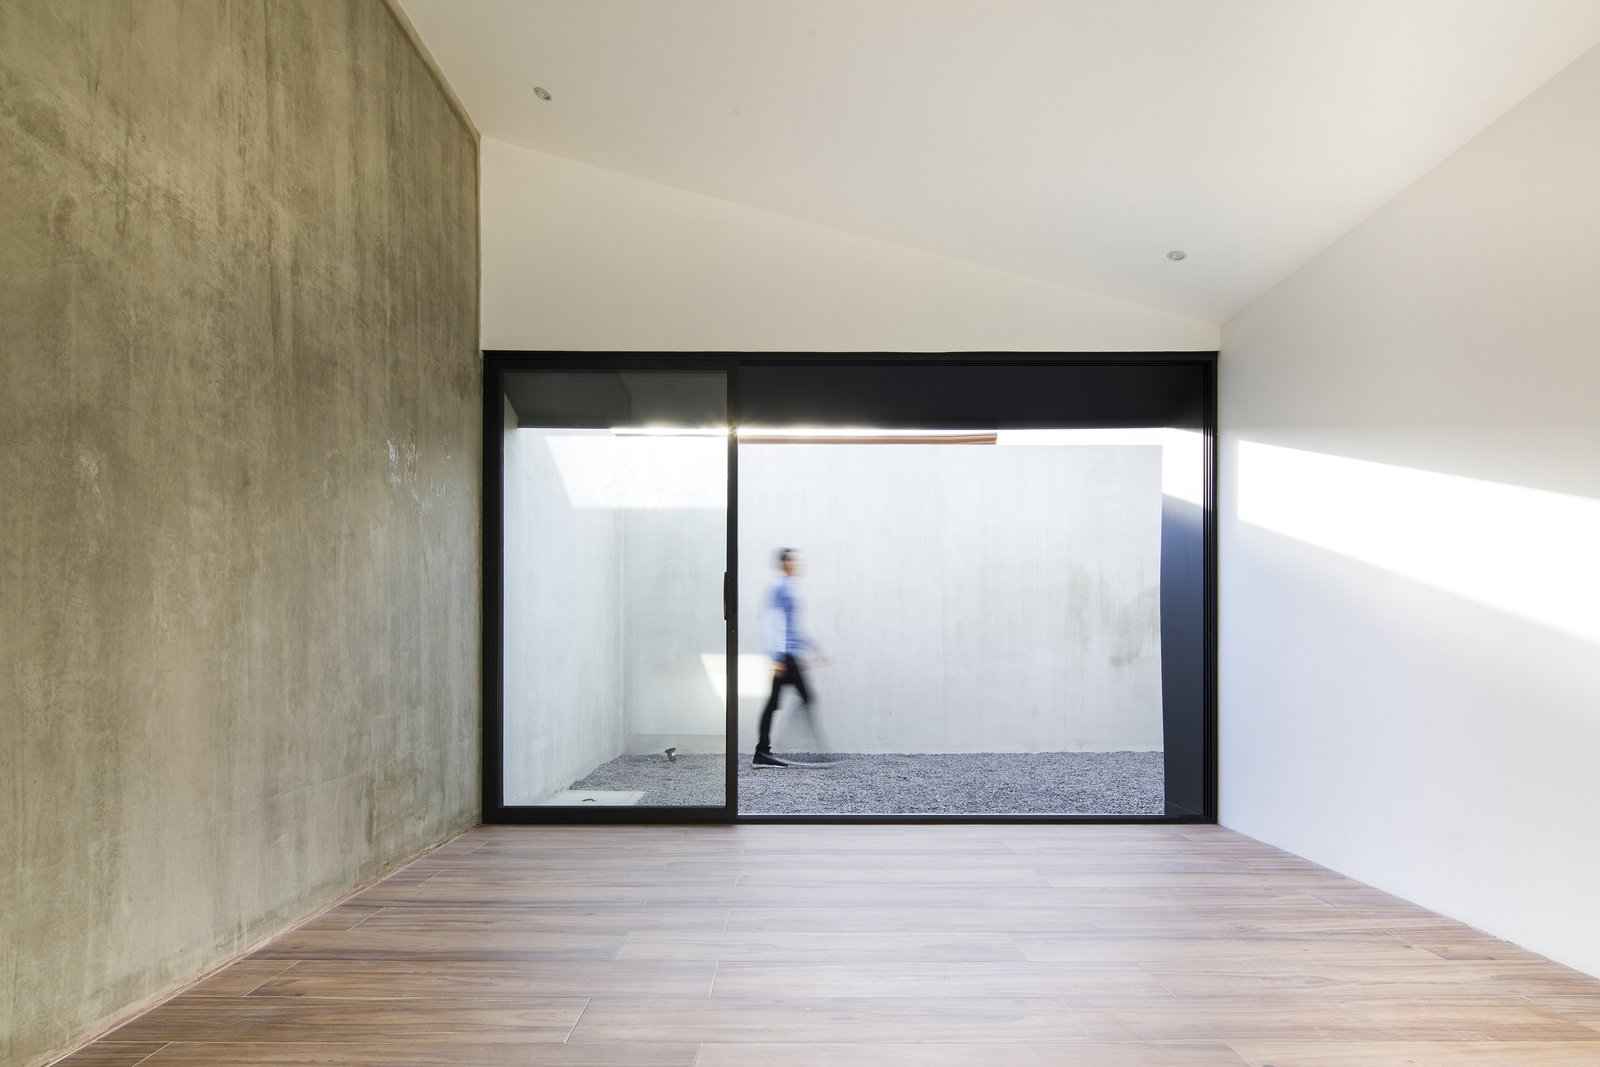 Tagged: Bedroom, Ceiling Lighting, and Porcelain Tile Floor.  Casa Ching by MG design studio